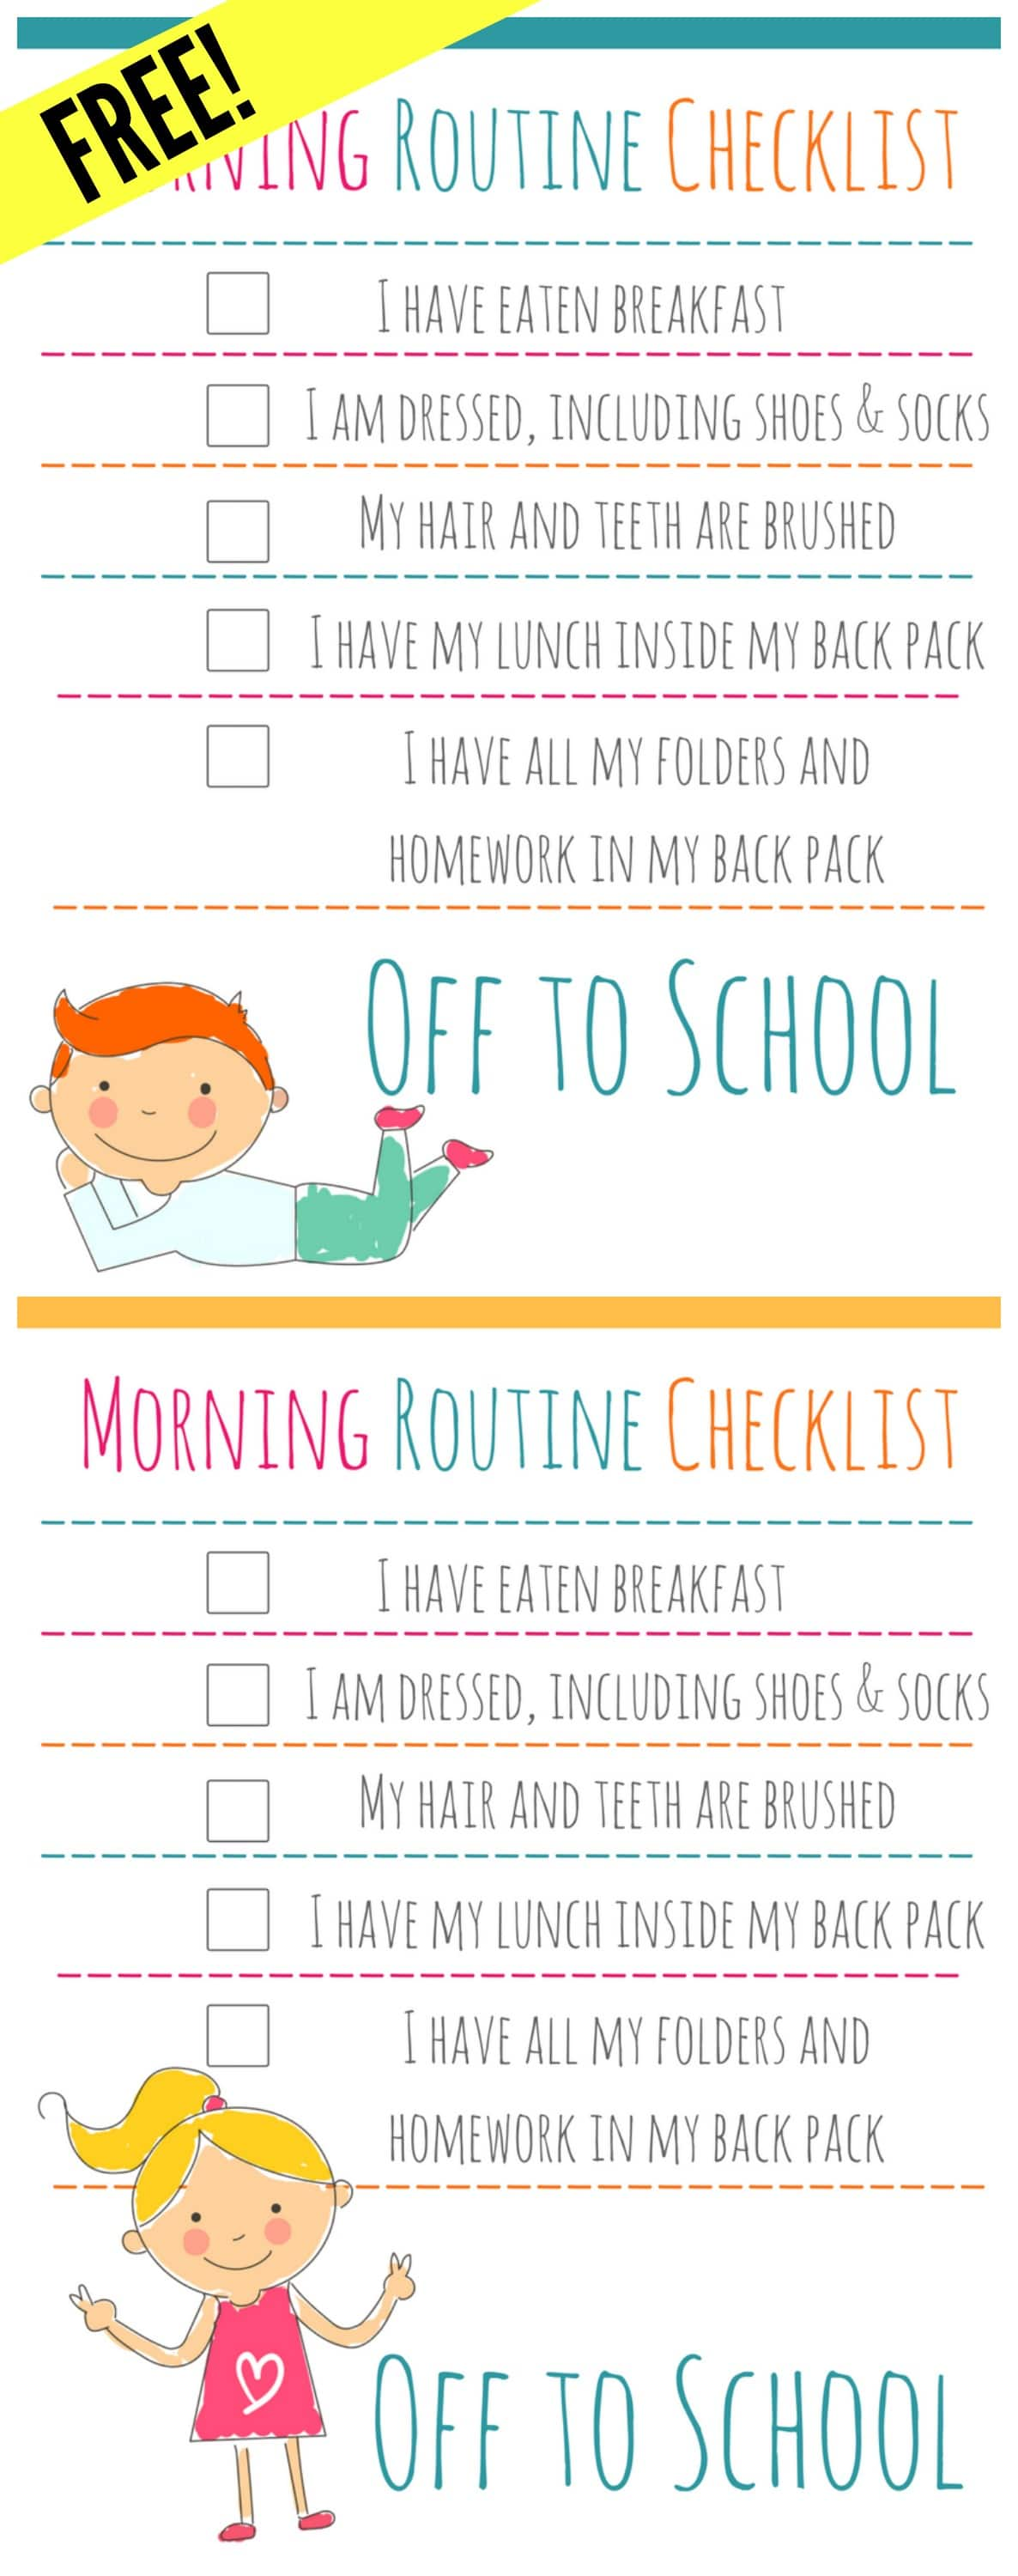 FREE MORNING ROUTINE CHECKLIST : Free Printable, download and laminate or add to a frame to keep kids organized and on task in the morning- two color and graphic schemes, totally adorable and free printable